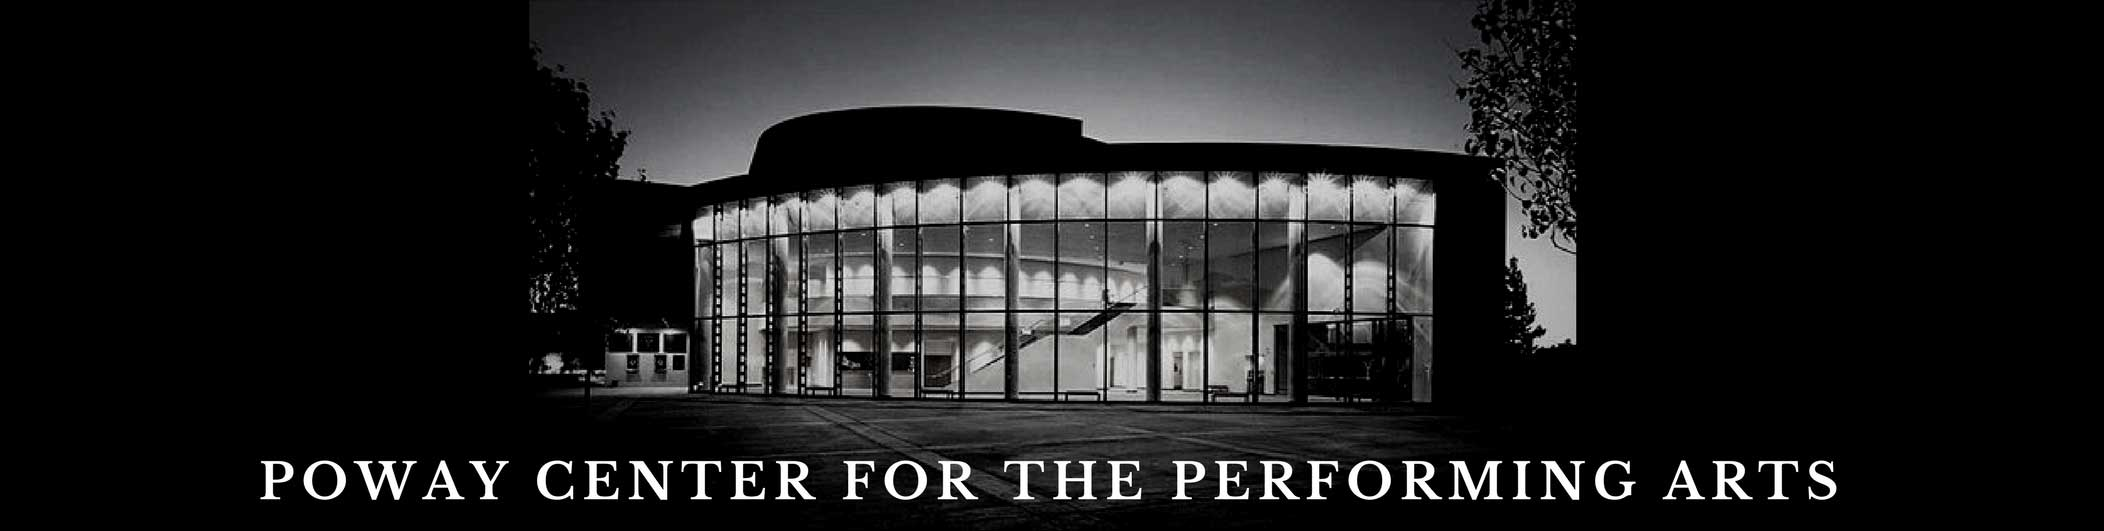 Link to additional information about the Poway Center for the Performing Arts.